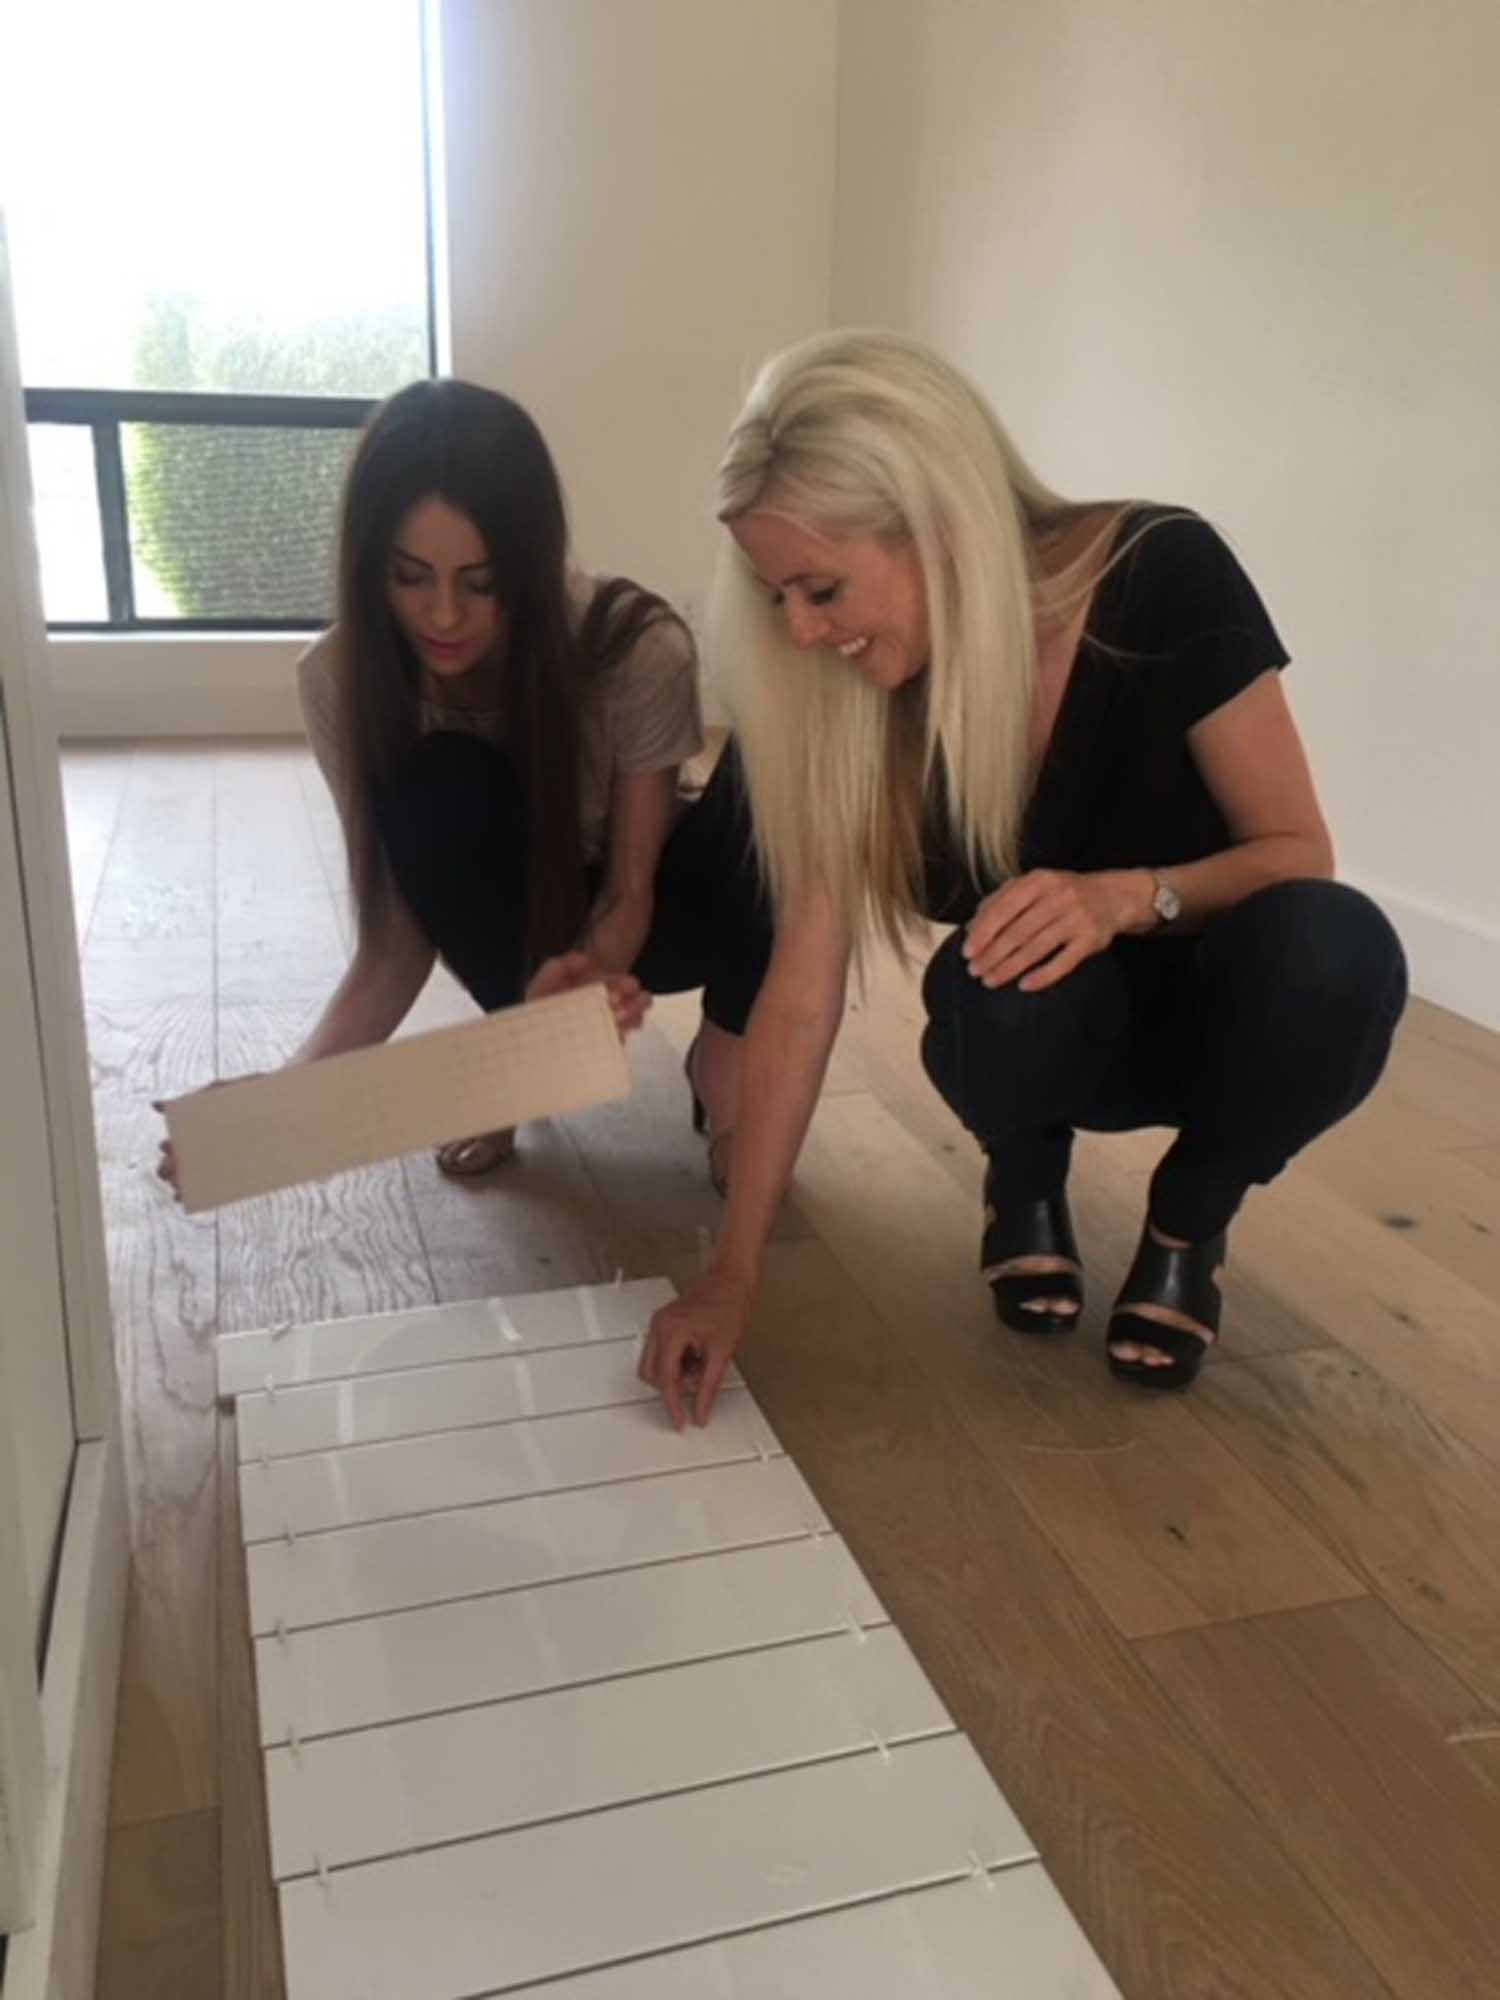 Two women working together in assembling tiles